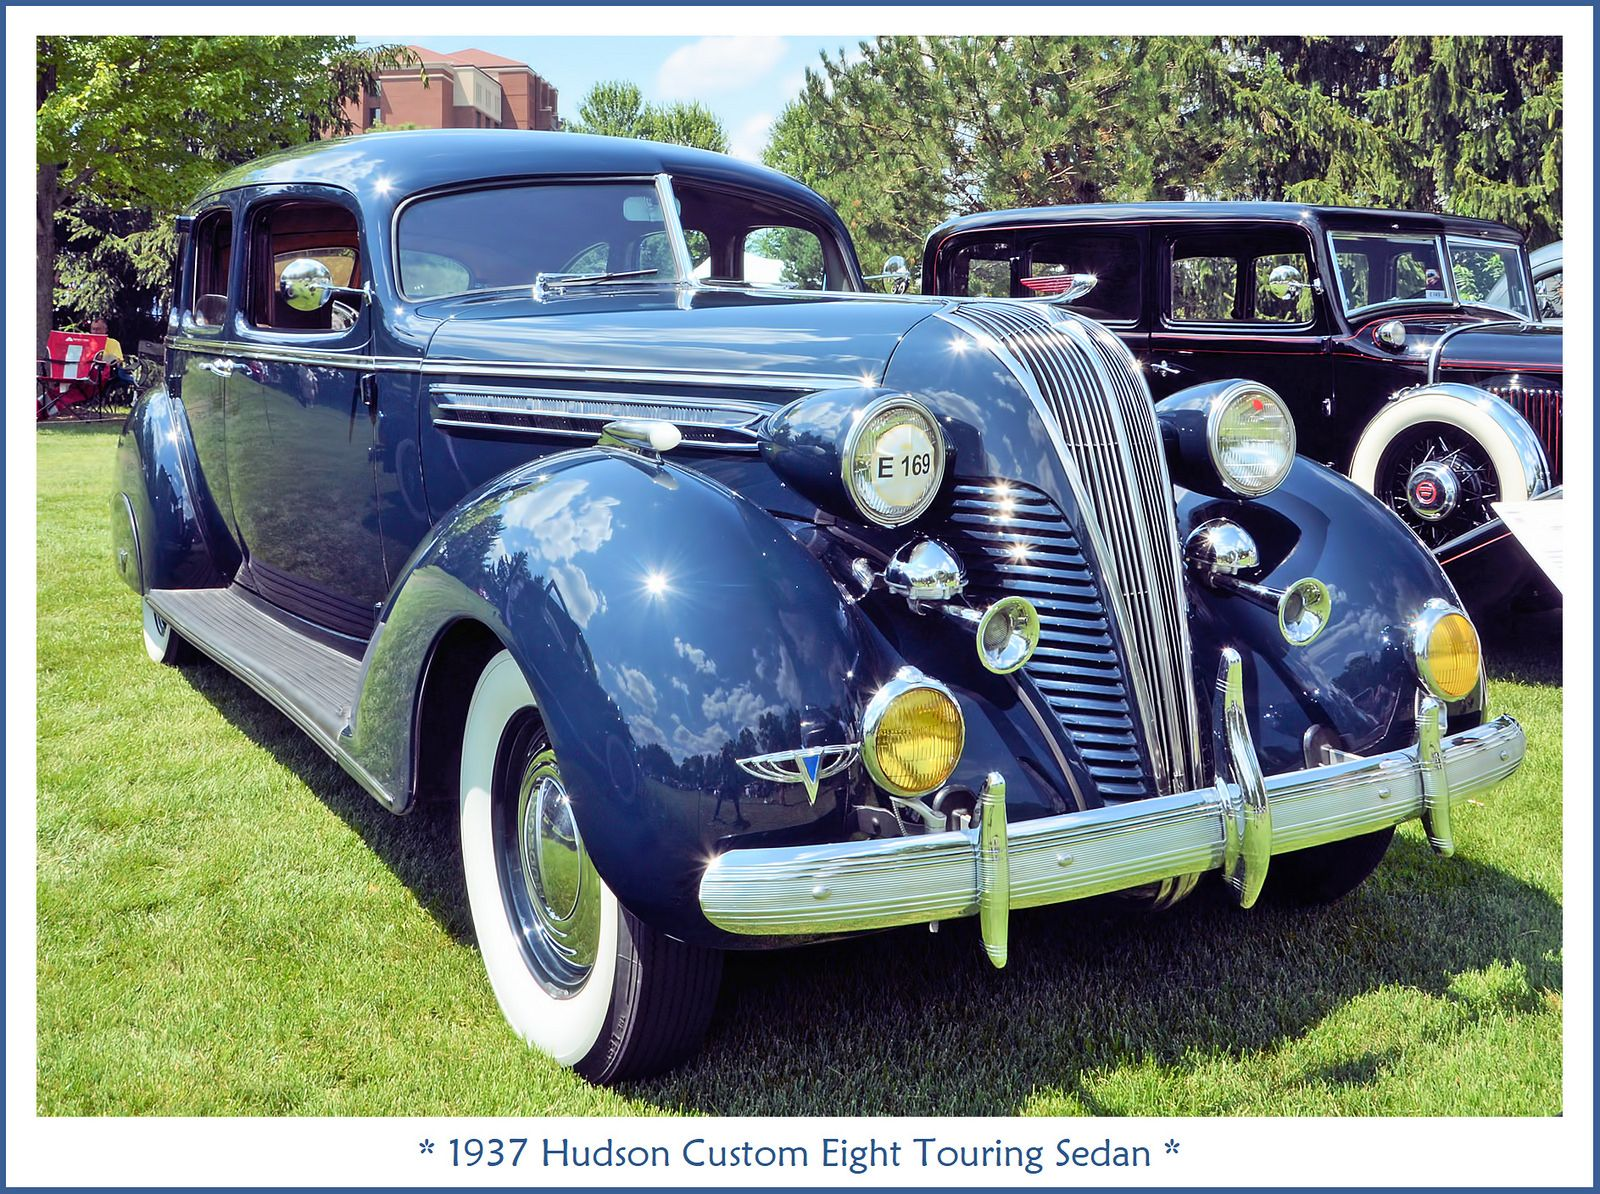 1937 Hudson Custom Eight Touring Sedan